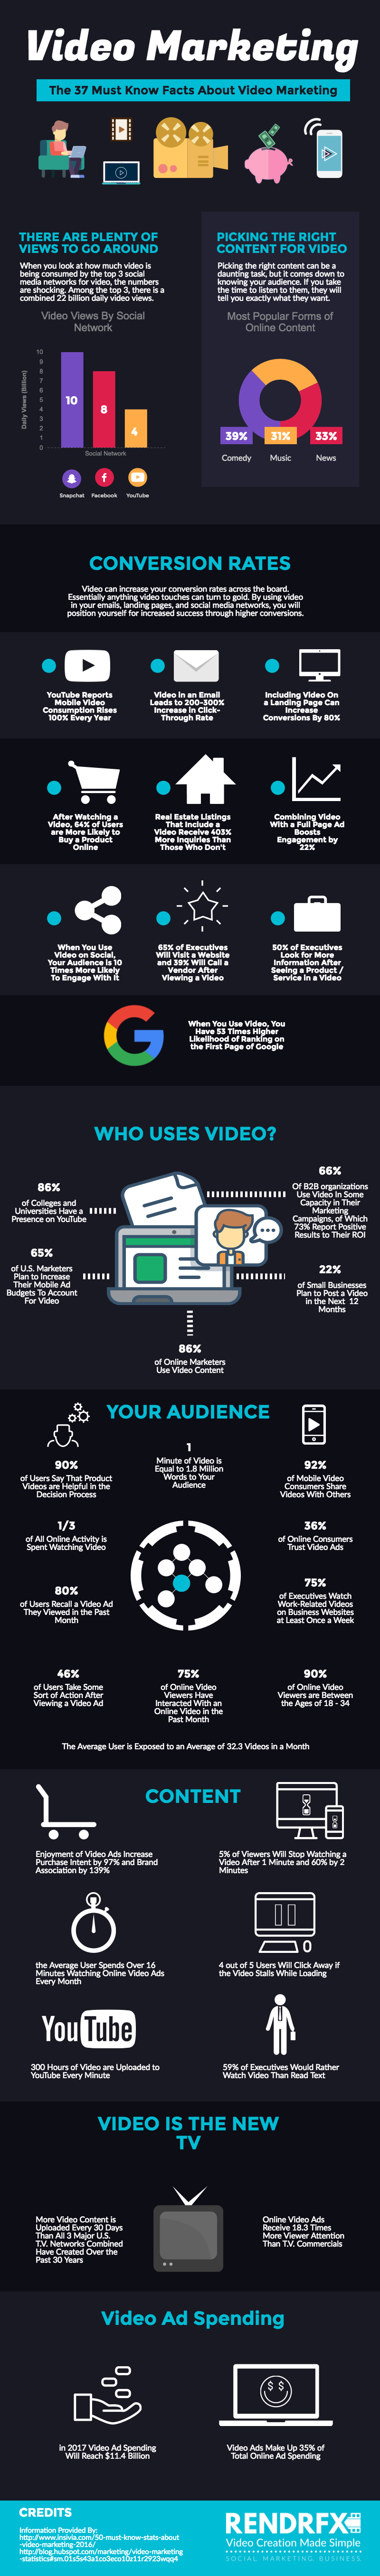 video-marketing-stats-2017